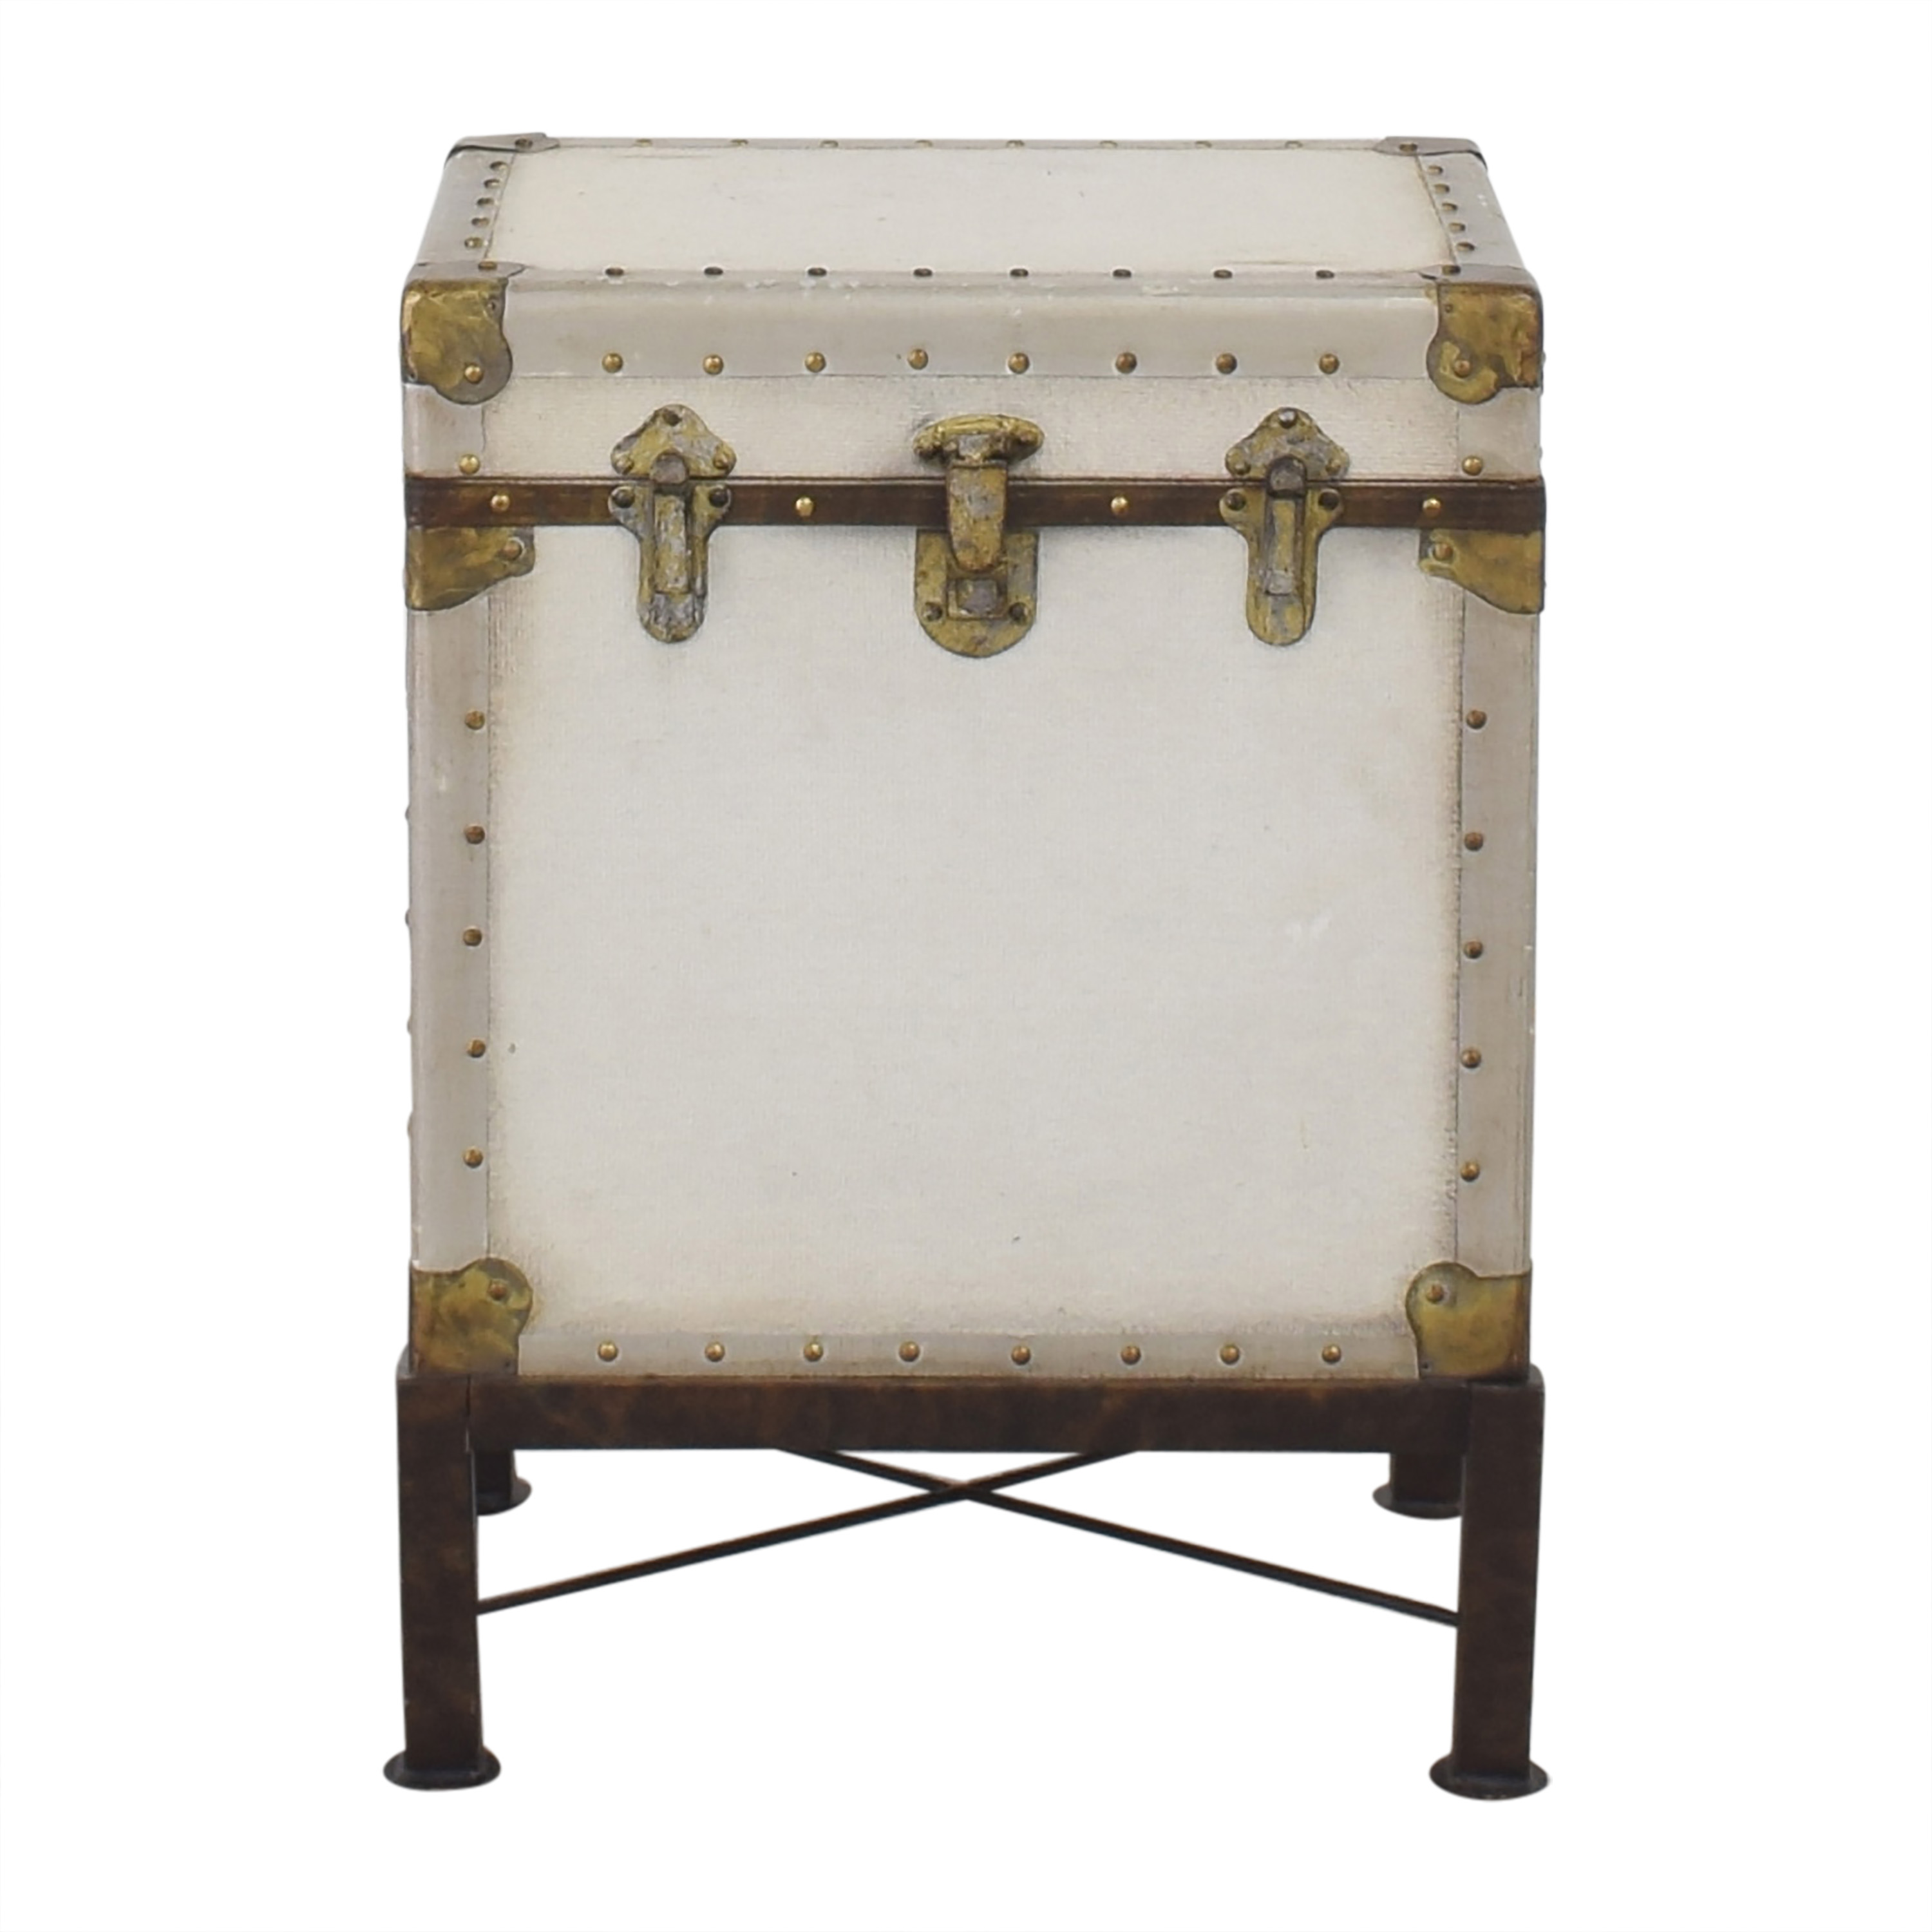 Pottery Barn Pottery Barn Ludlow Trunk End Table second hand